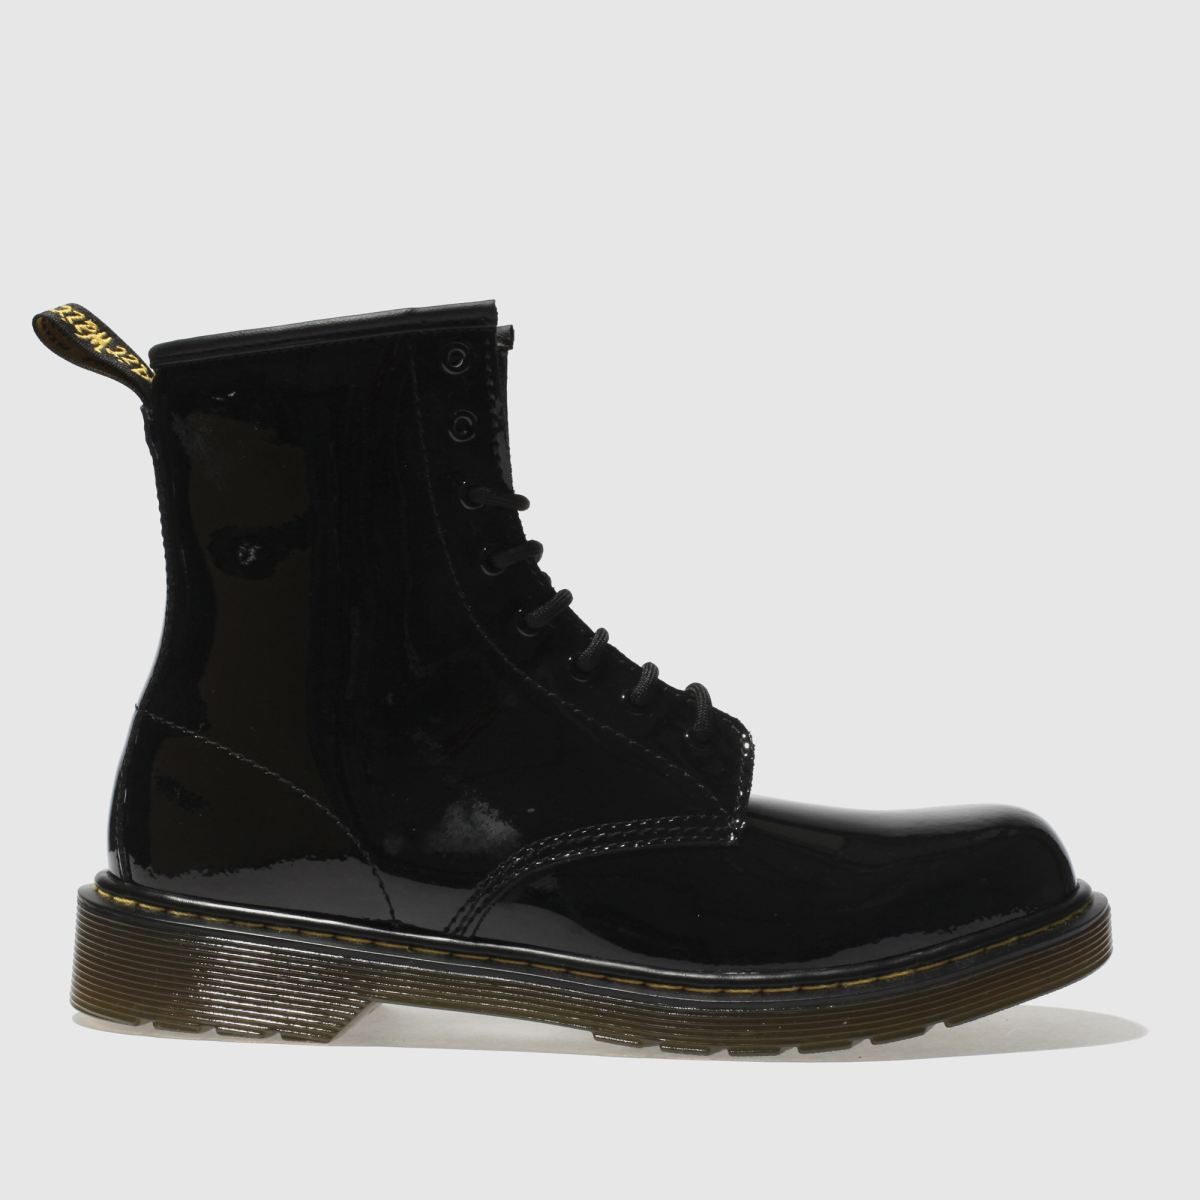 Dr Martens Black 1460 Girls Youth Boots